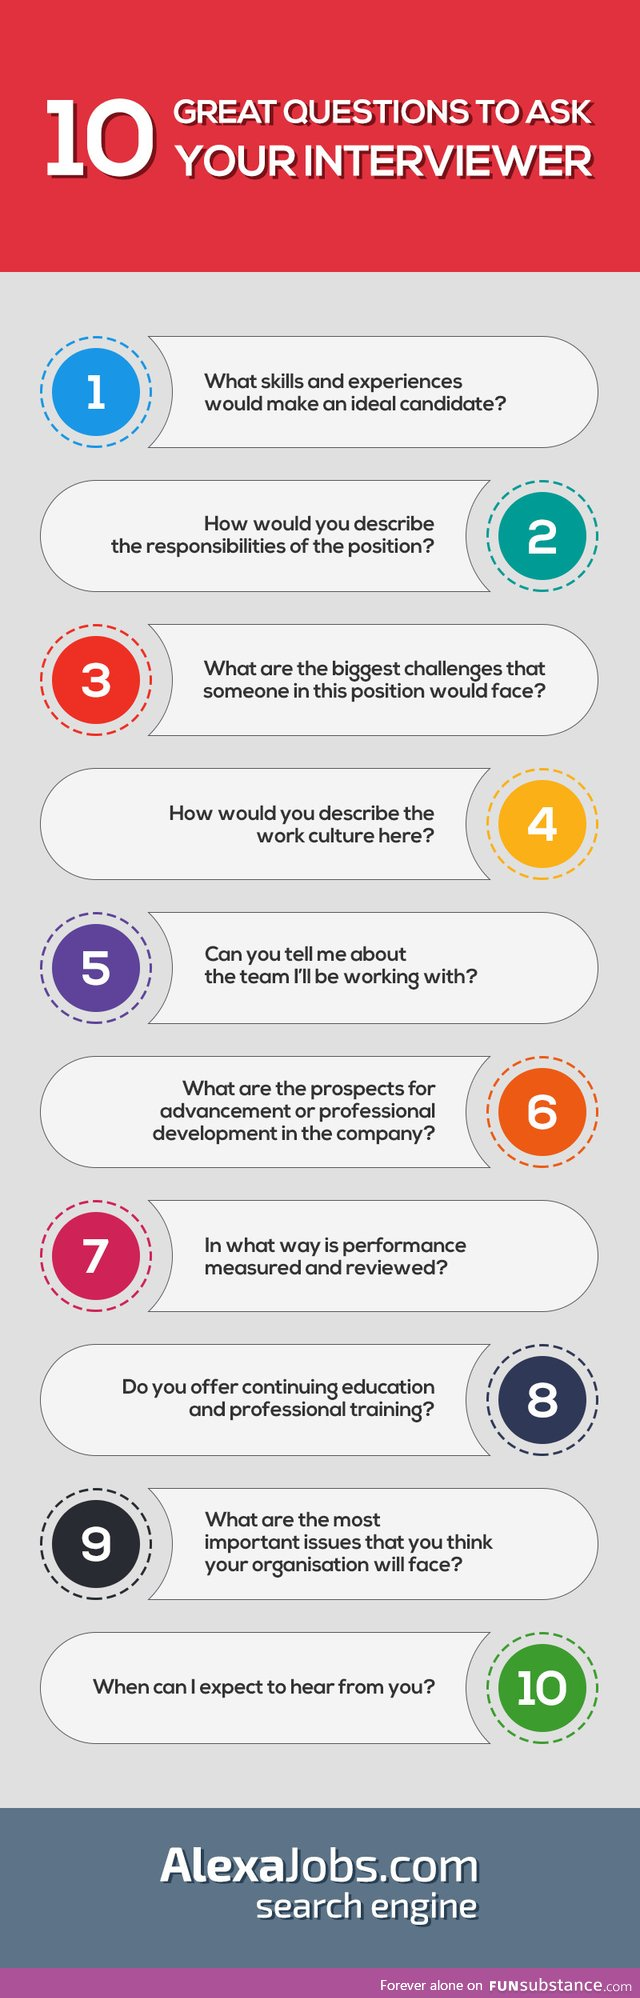 10 questions to ask your interviewer